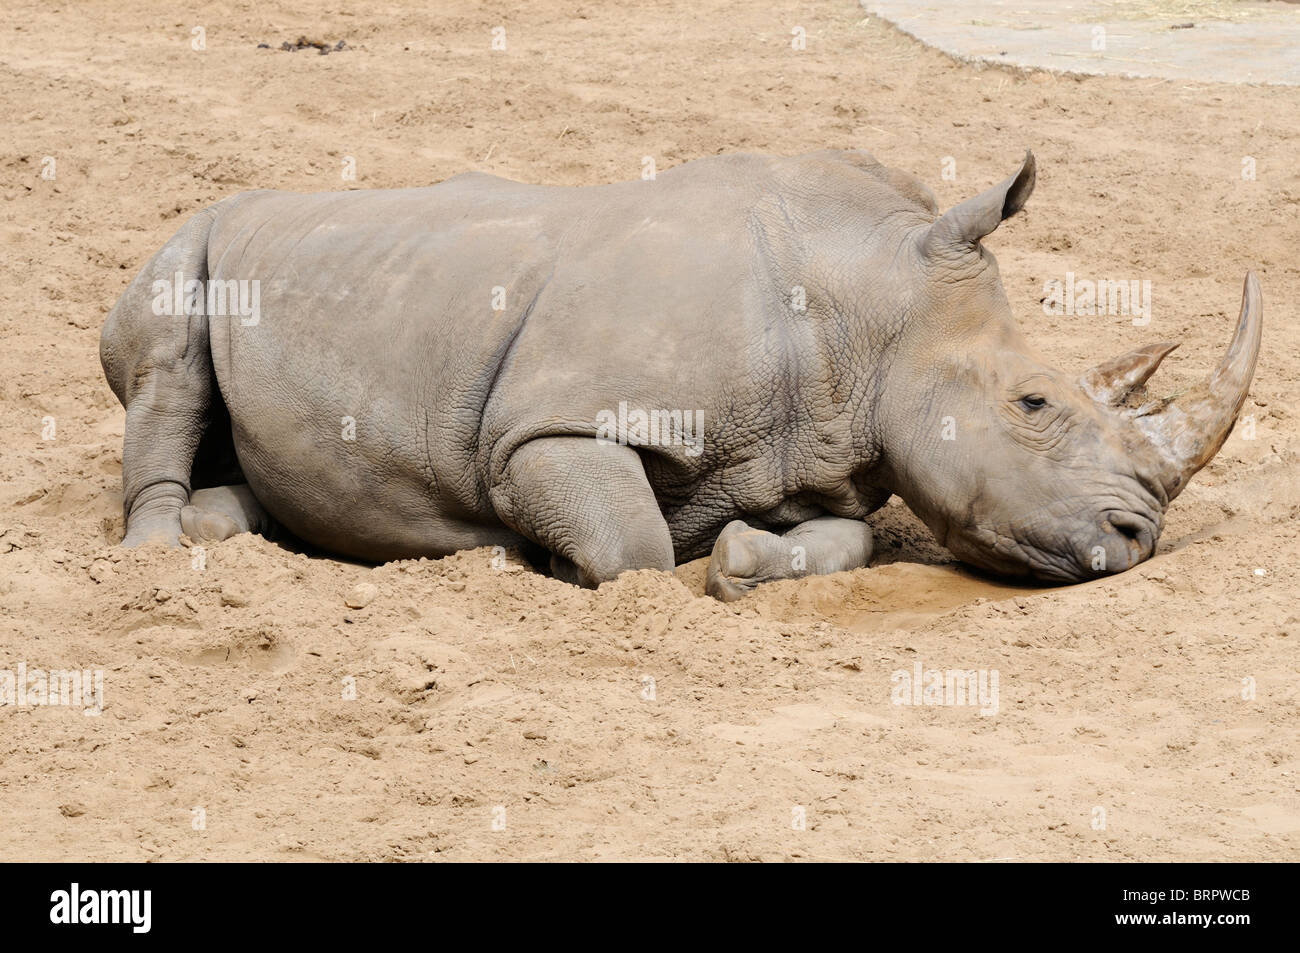 Stock photo of a Rhinoceros at La Palmyre zoo in France. - Stock Image